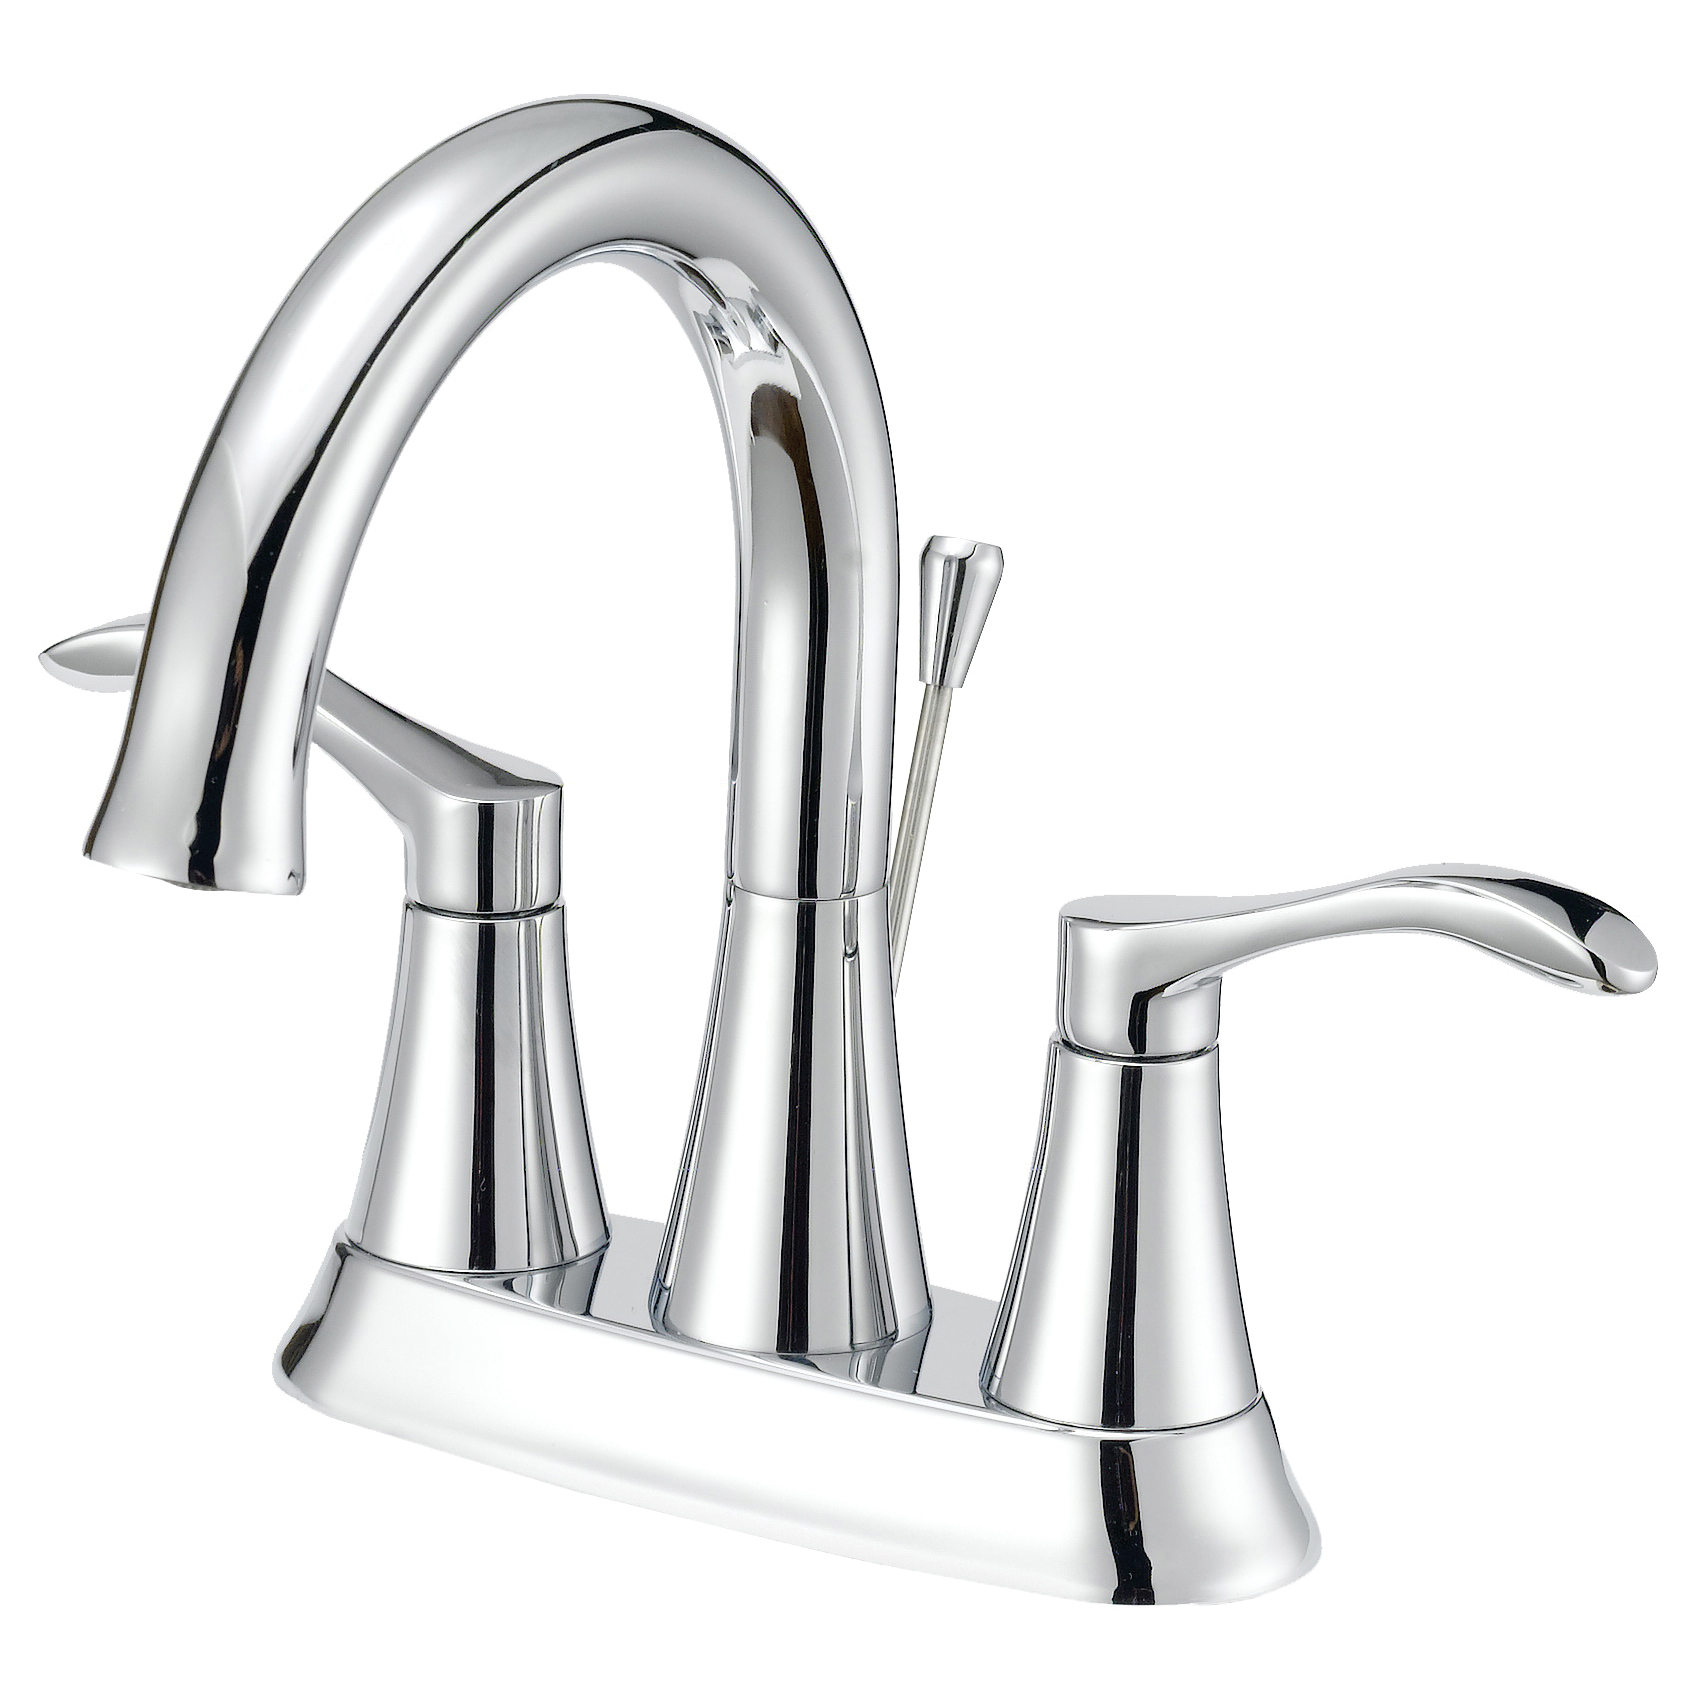 Picture of Boston Harbor F51A0073CP Bathroom Faucet, 1.2 gpm, 2-Faucet Handle, Chrome, Lever Handle